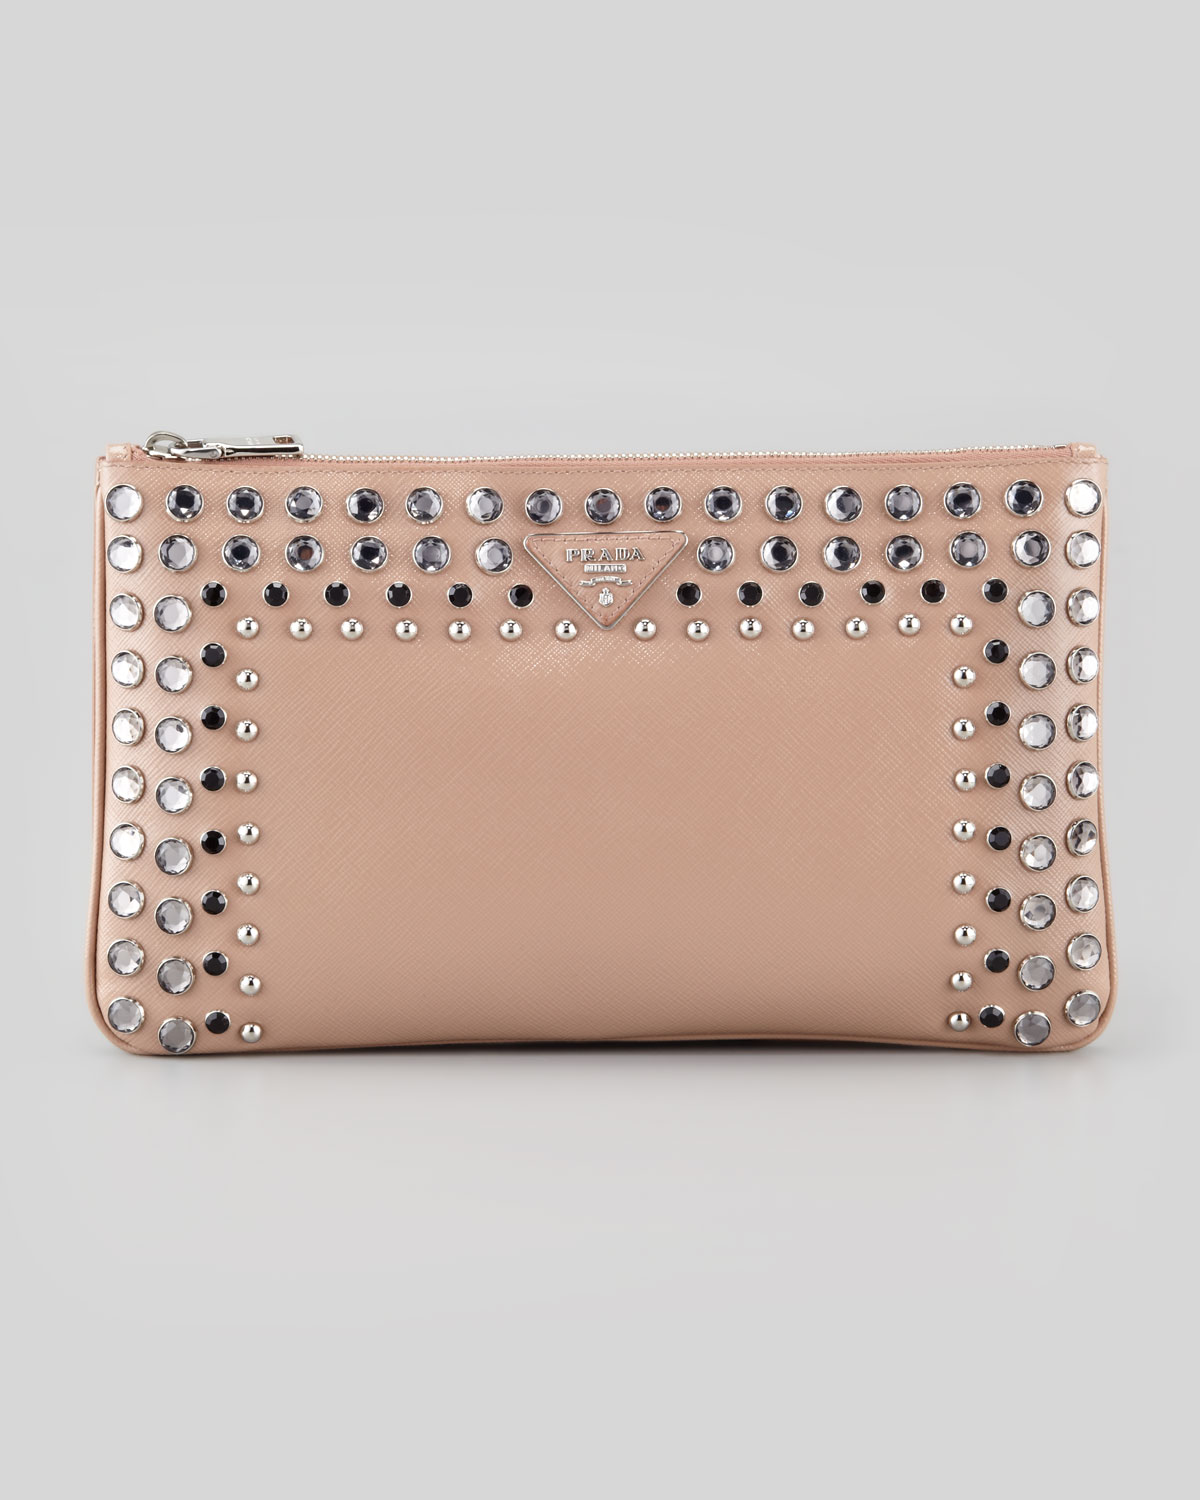 prada handbags sale usa - Prada Saffiano Vernice Clutch Bag in Pink (light pink/clear) | Lyst